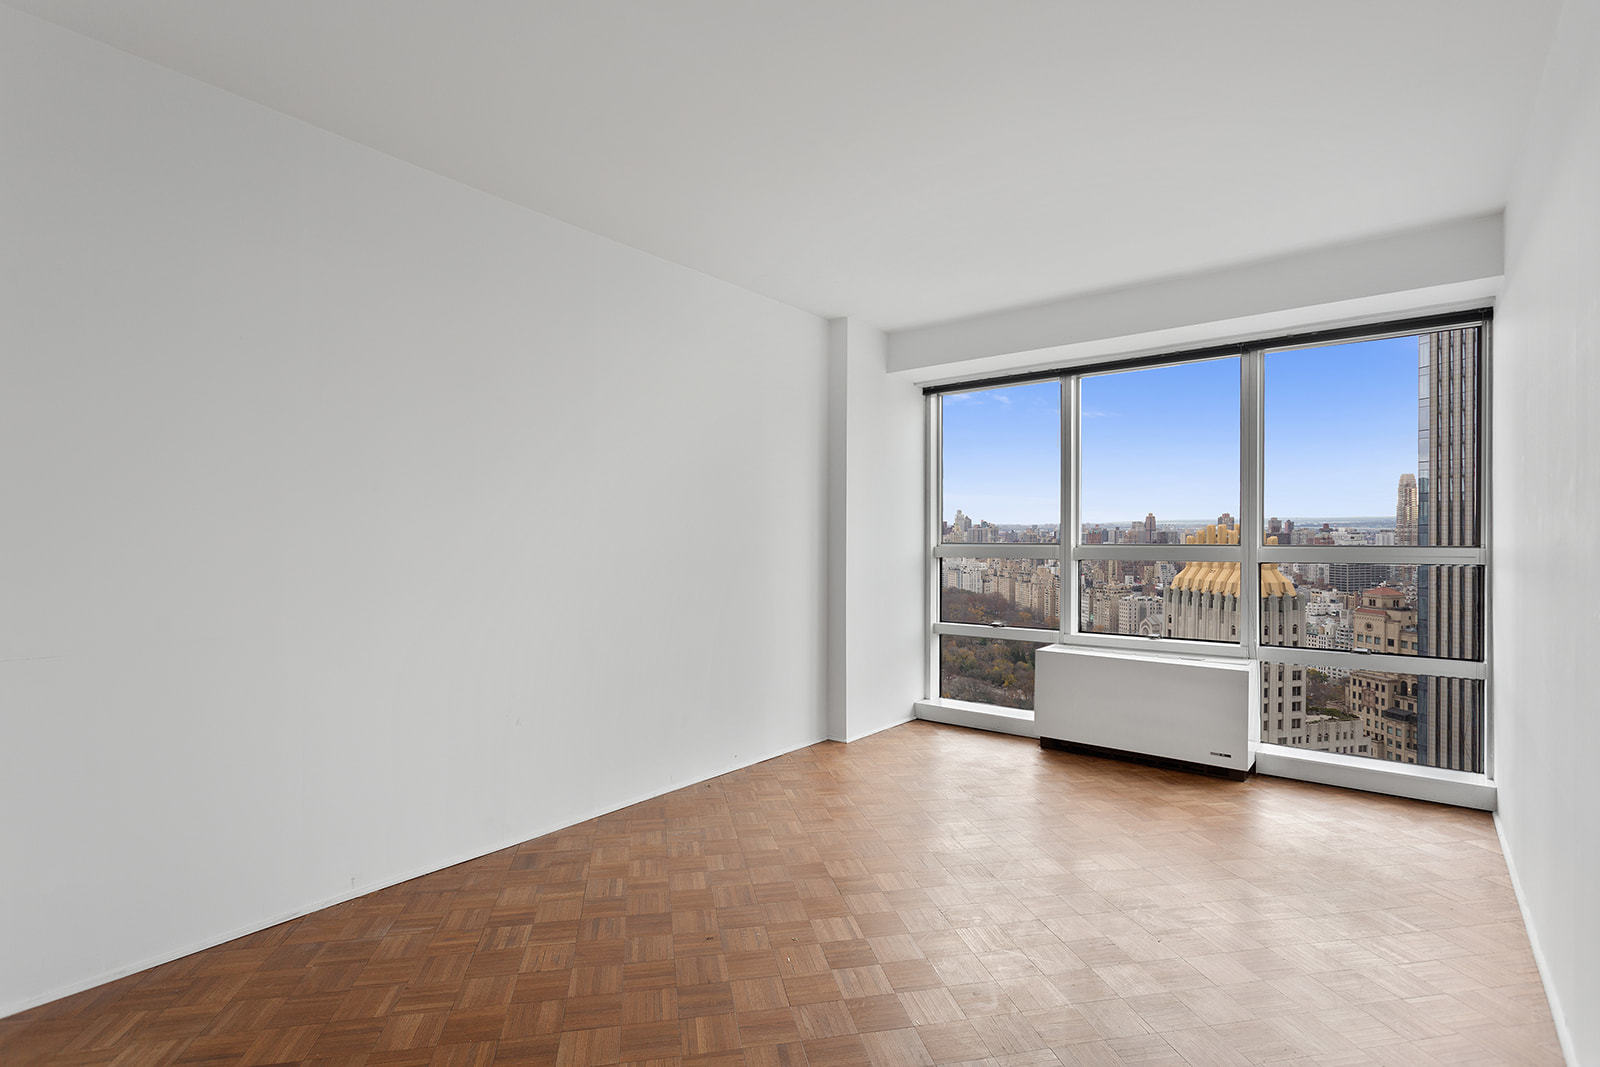 Apartment for sale at 146 West 57th Street, Apt 52-B